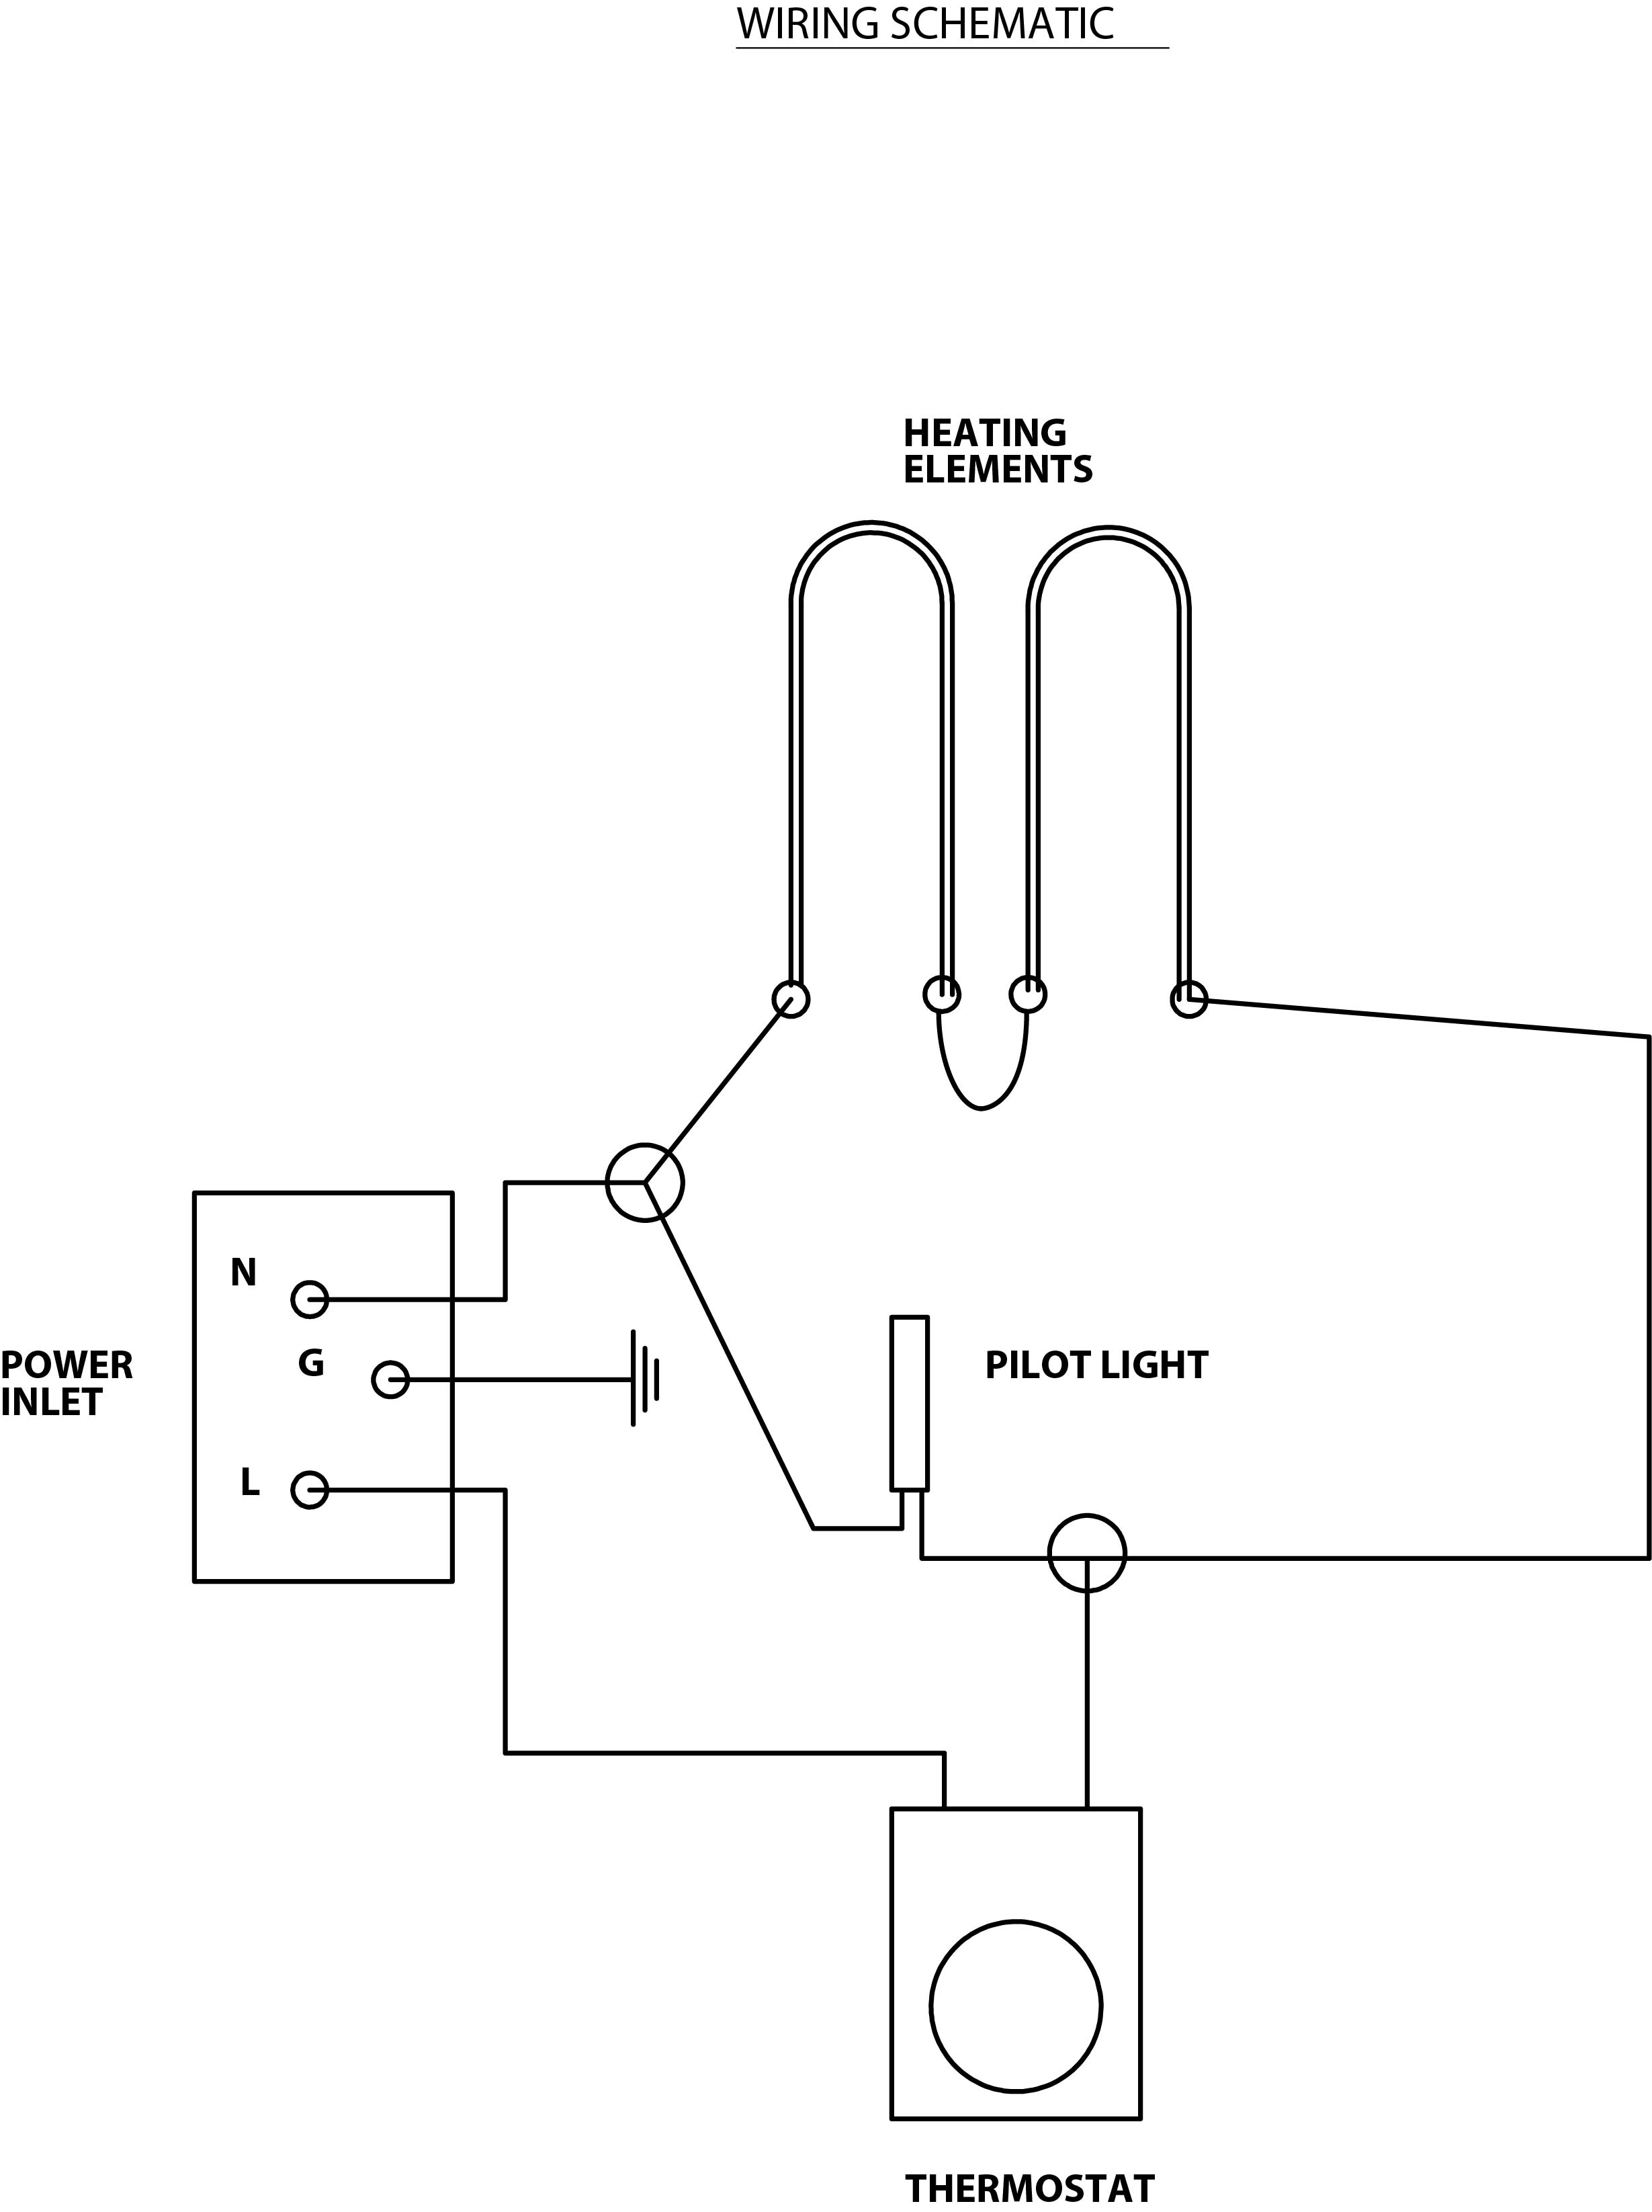 wiring diagram for furnace motor wiring discover your wiring heating element for 220 volt wiring diagram